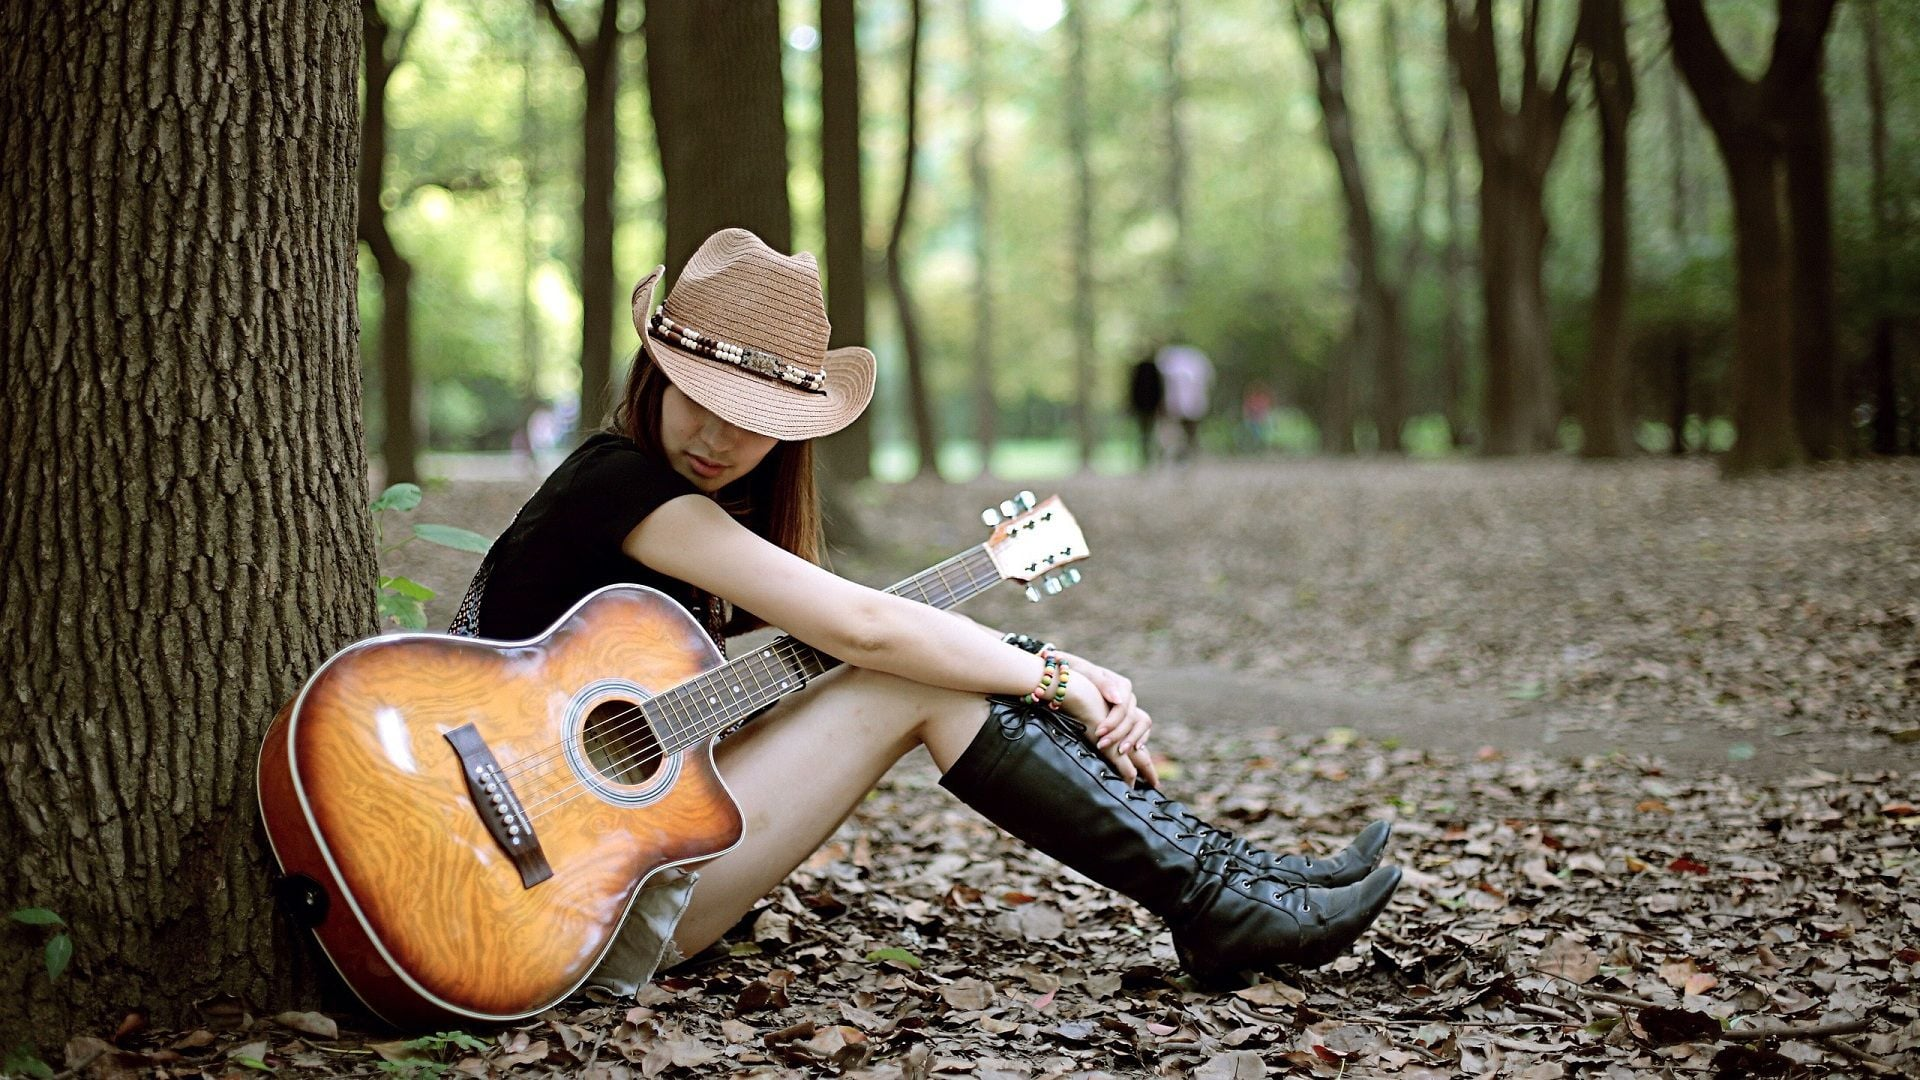 Sad Baby Girl Wallpaper With Quotes Wallpapers Girl With Guitar Hd Download